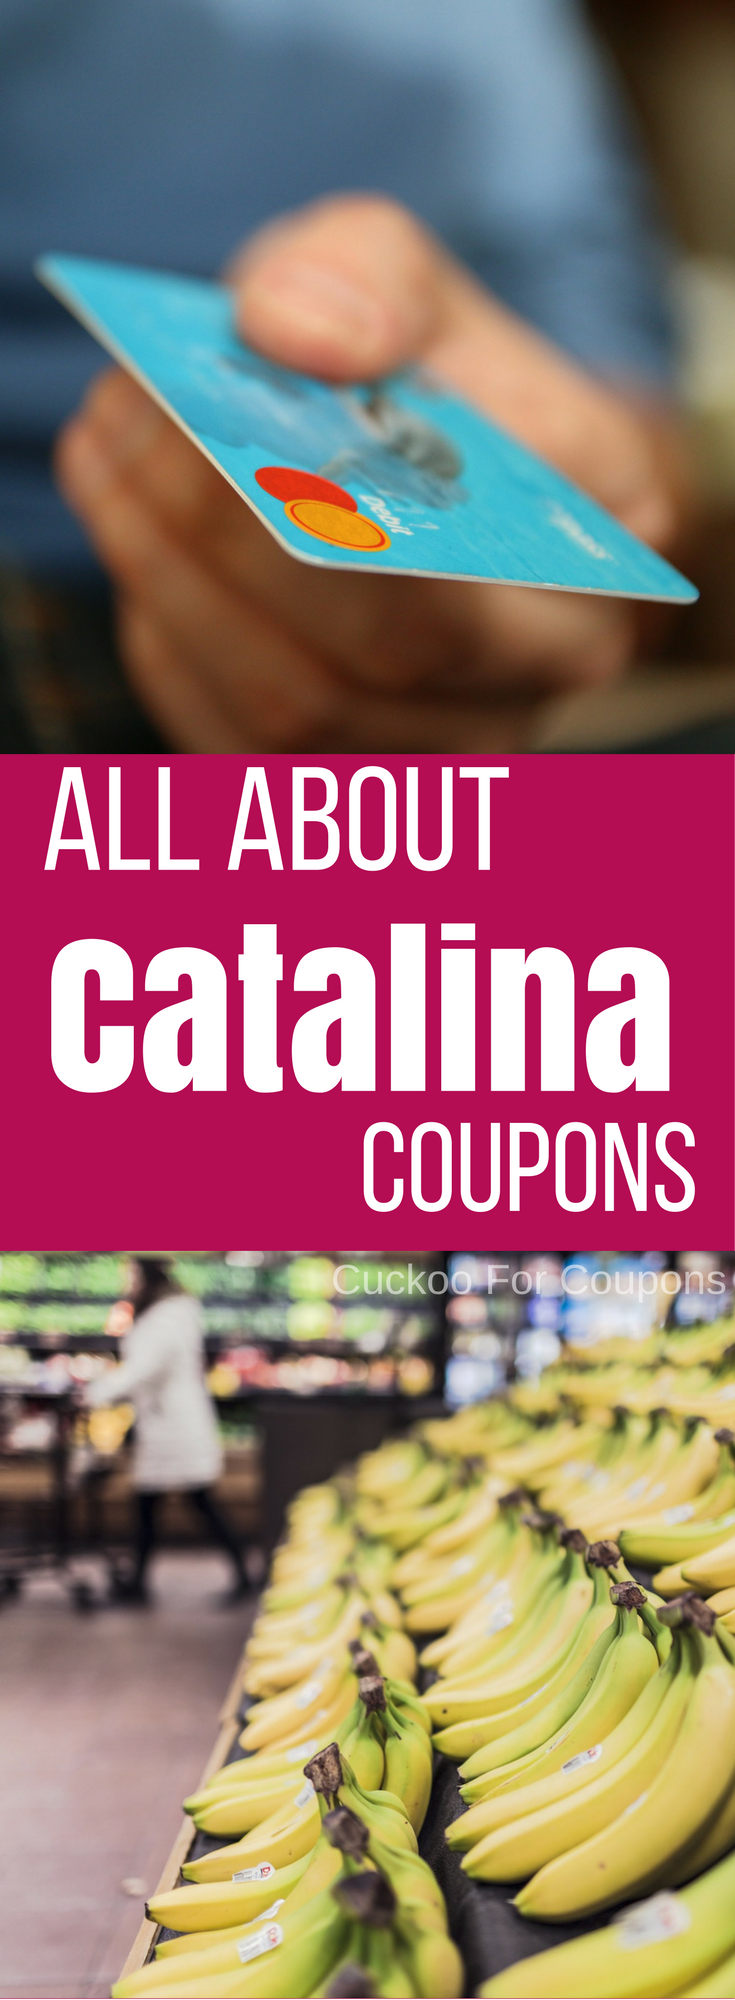 catalina-coupons